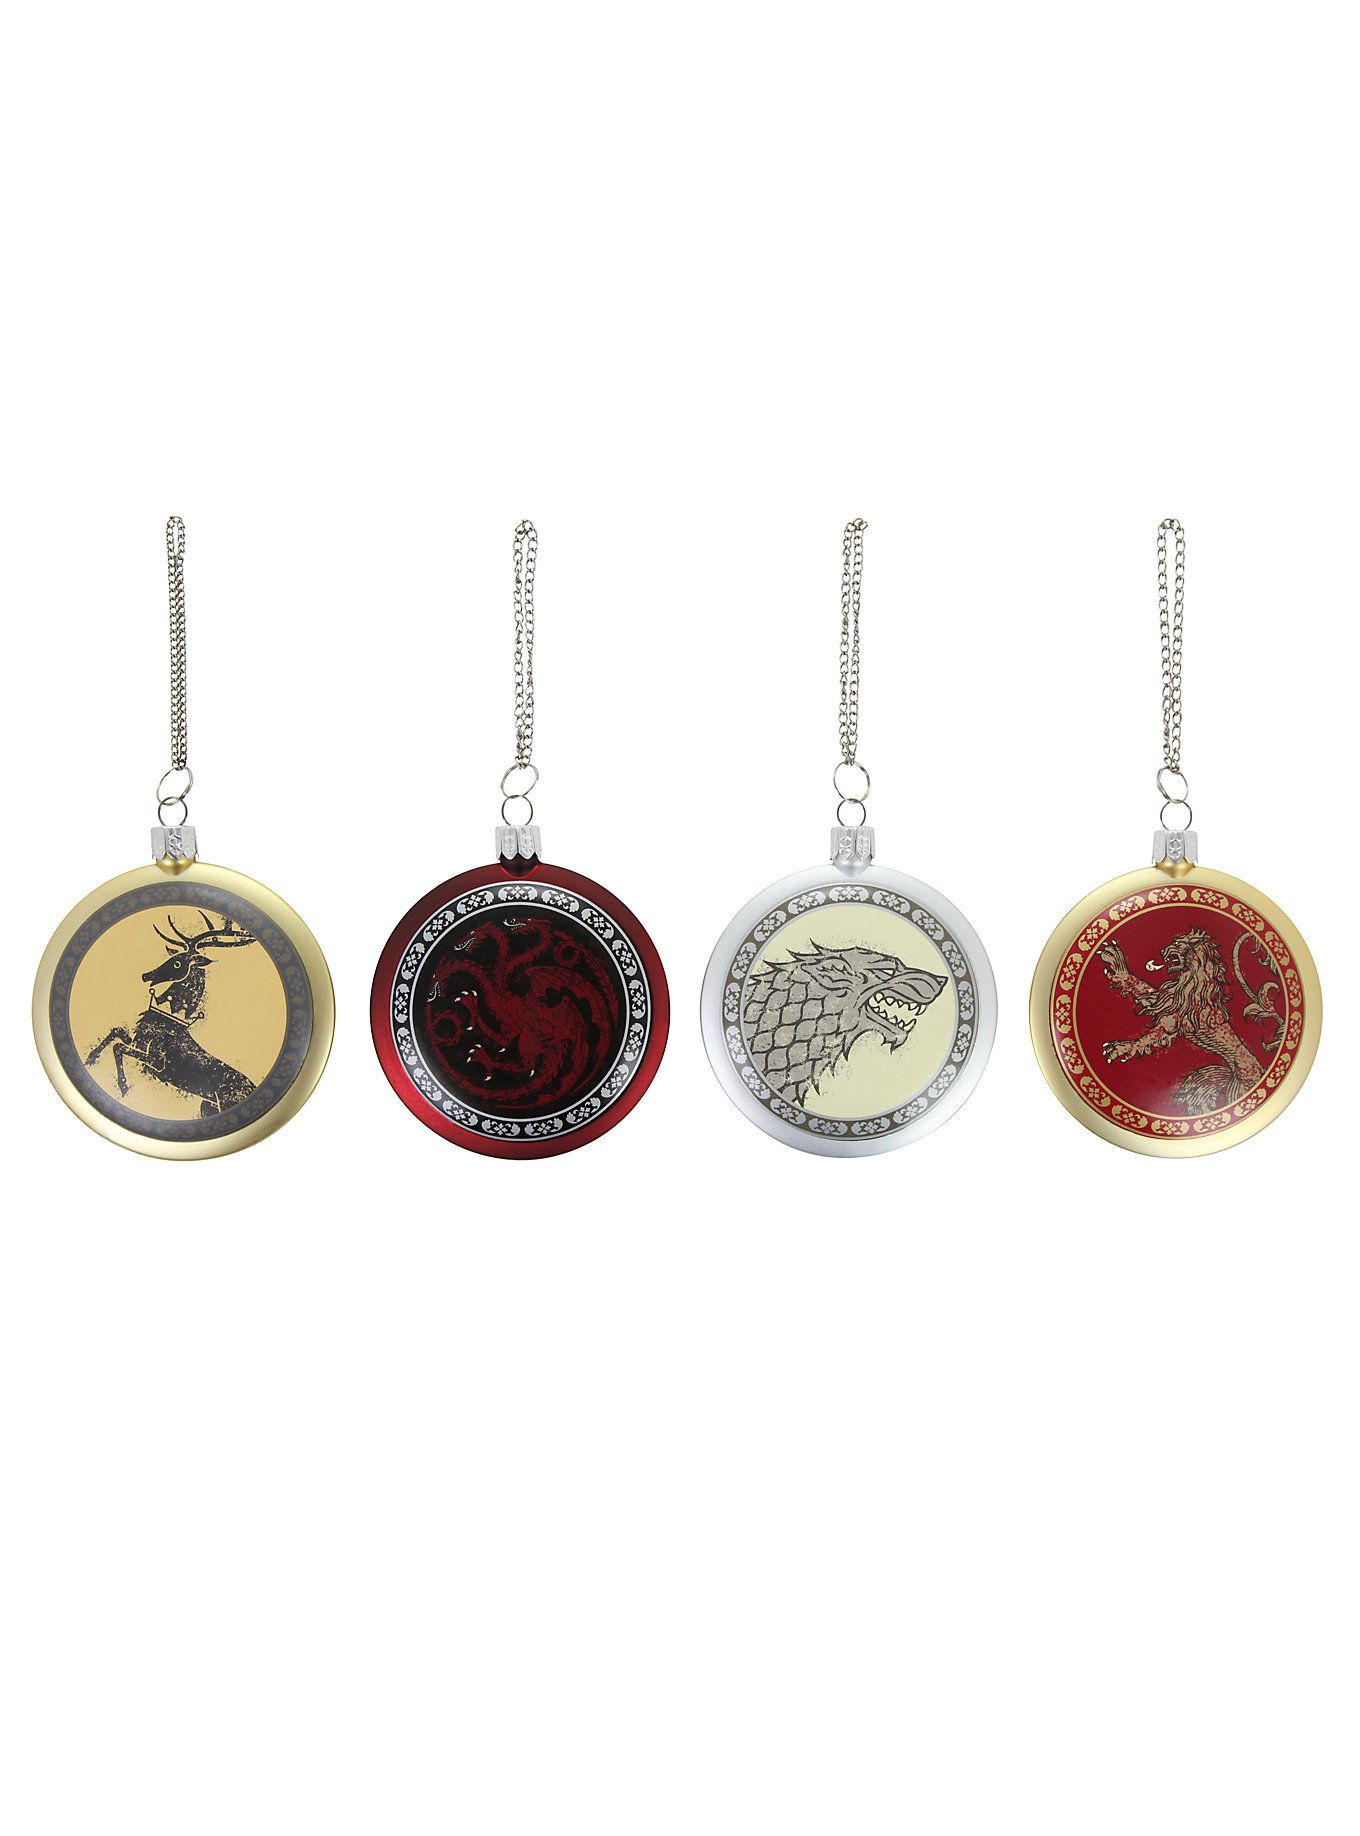 Game Of Thrones 4 Piece Holiday Ornament Set Game Of Thrones Merchandise Ornament Set Holiday Ornaments